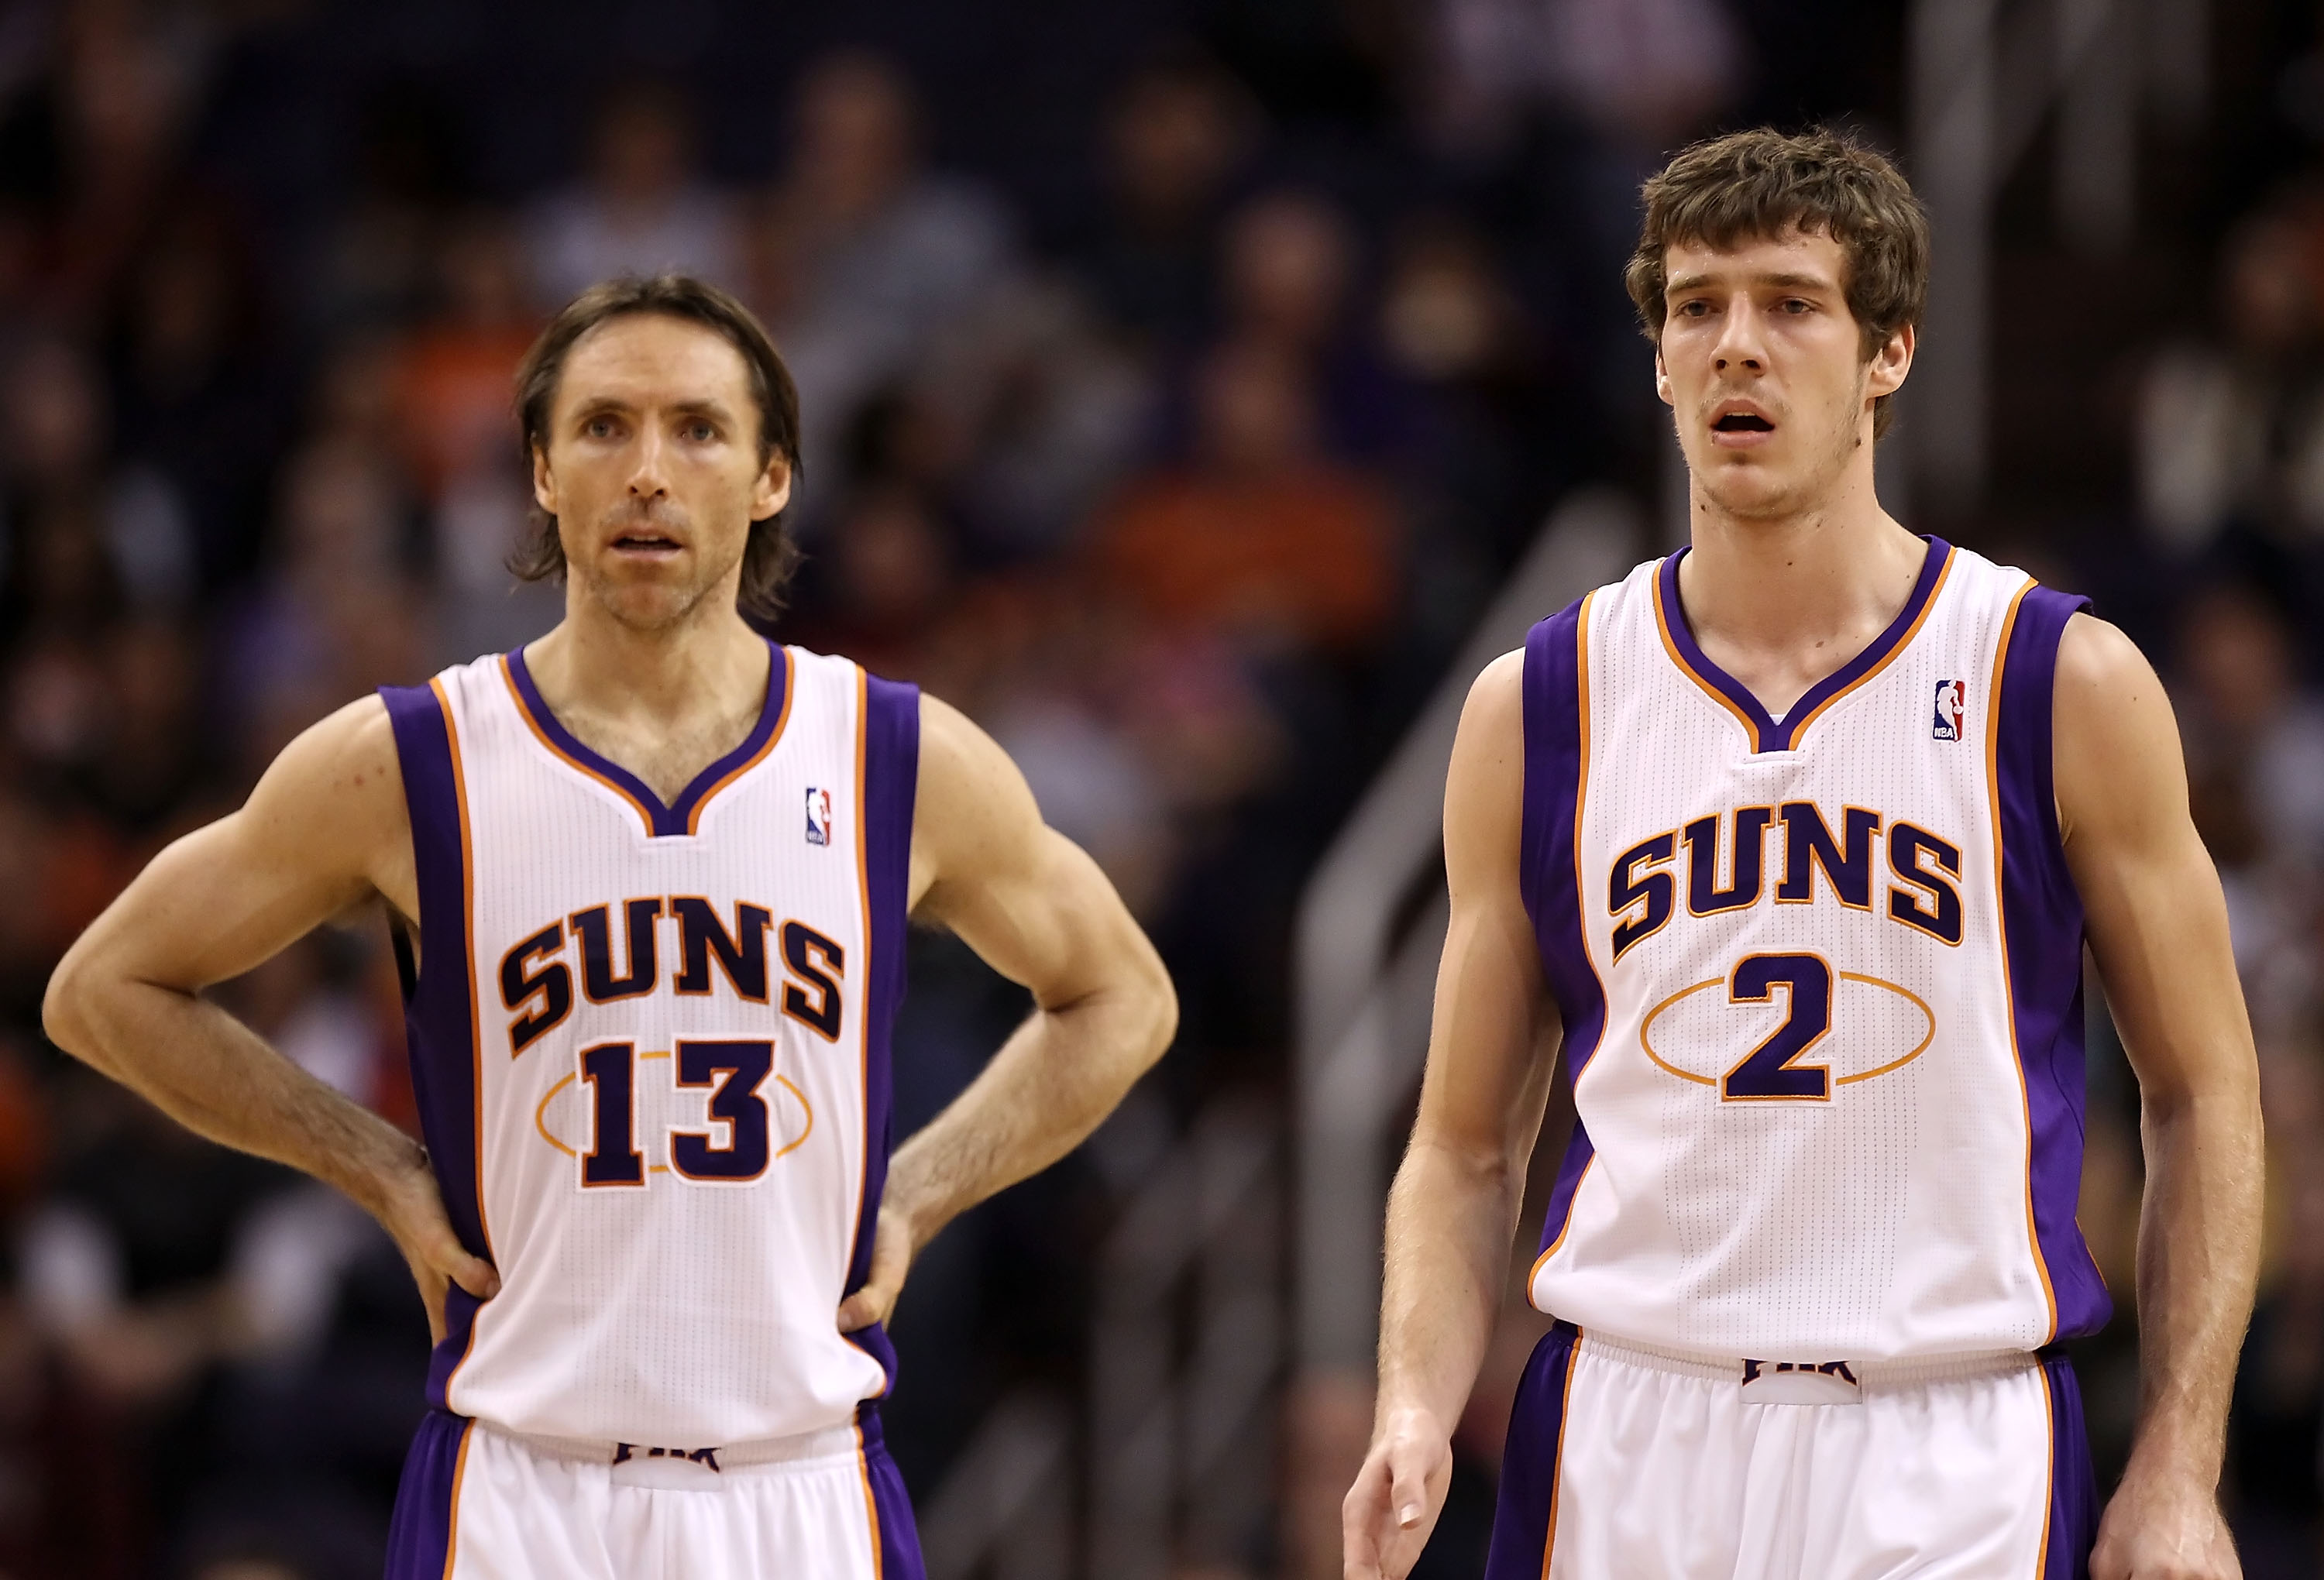 PHOENIX - DECEMBER 10:  Steve Nash #13 and Goran Dragic #2 of the Phoenix Suns during the NBA game against the Portland Trail Blazers at US Airways Center on December 10, 2010 in Phoenix, Arizona.  The Trail Blazers defeated the Suns 101-94. NOTE TO USER: